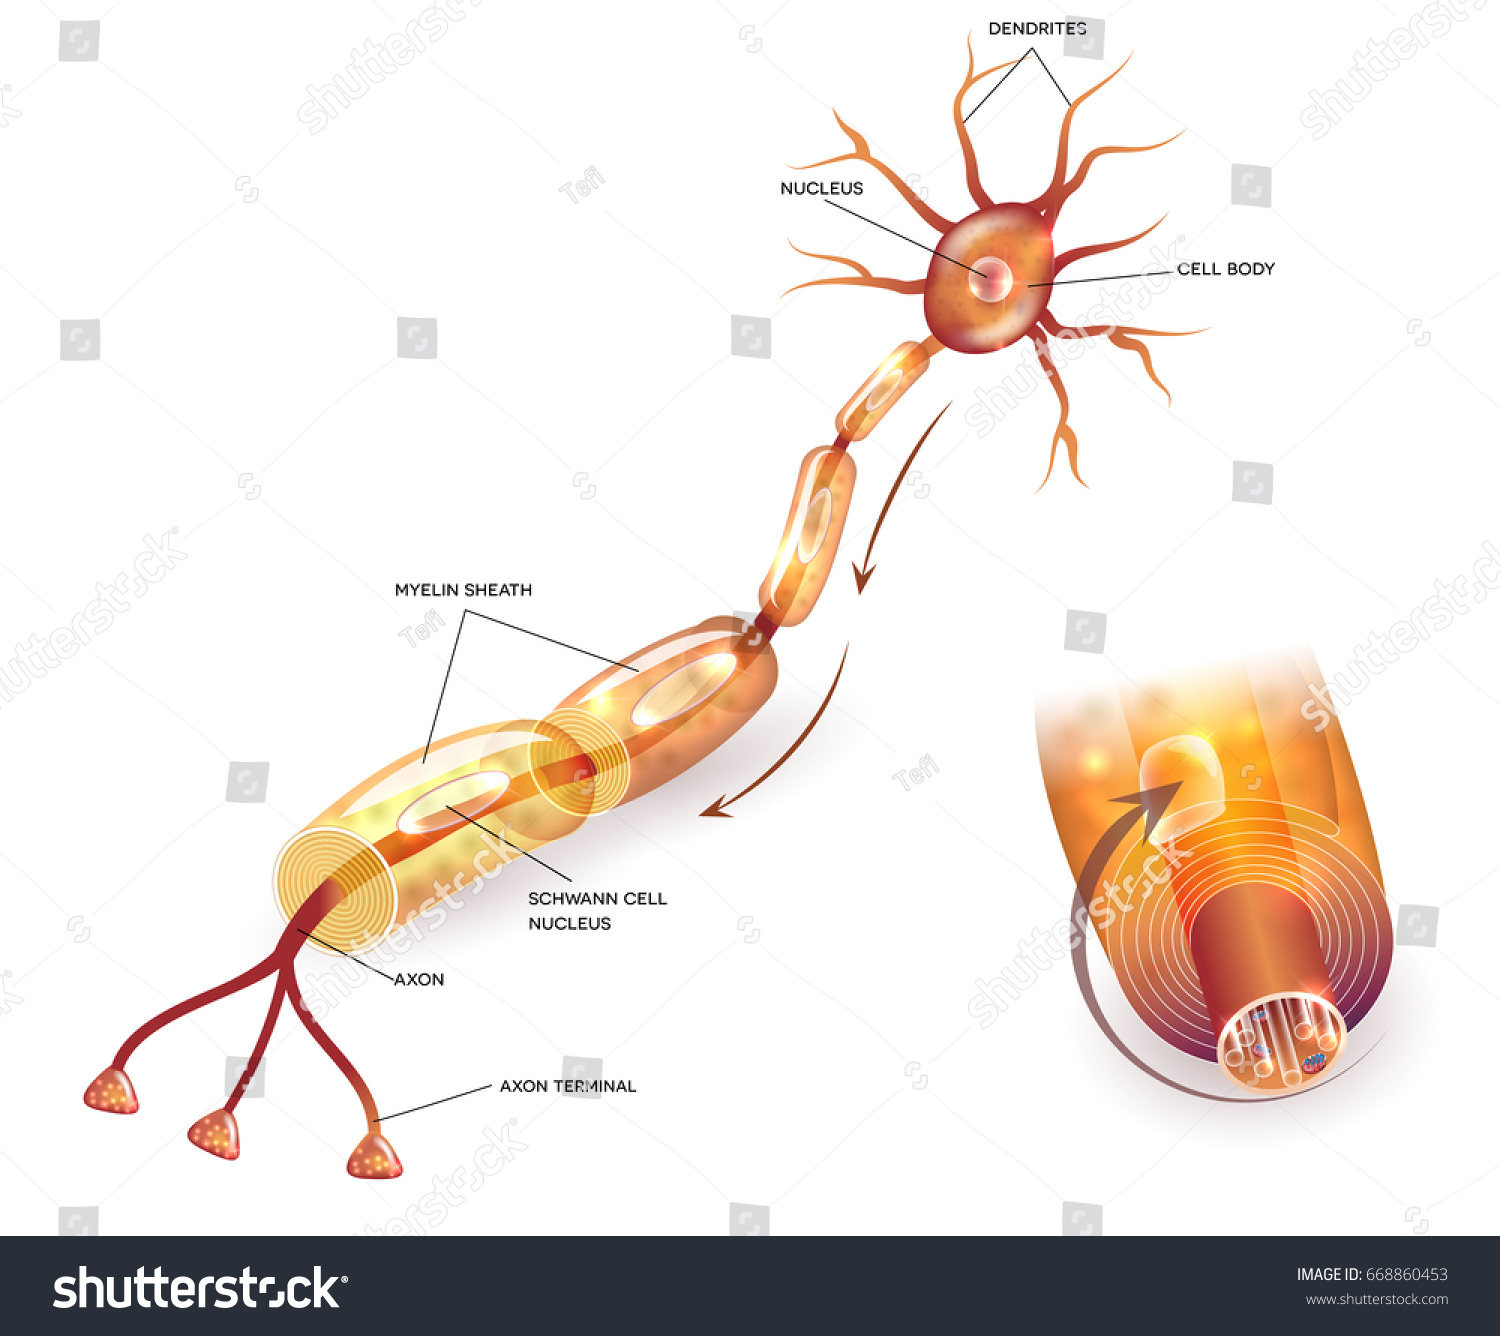 Nerve cell anatomy